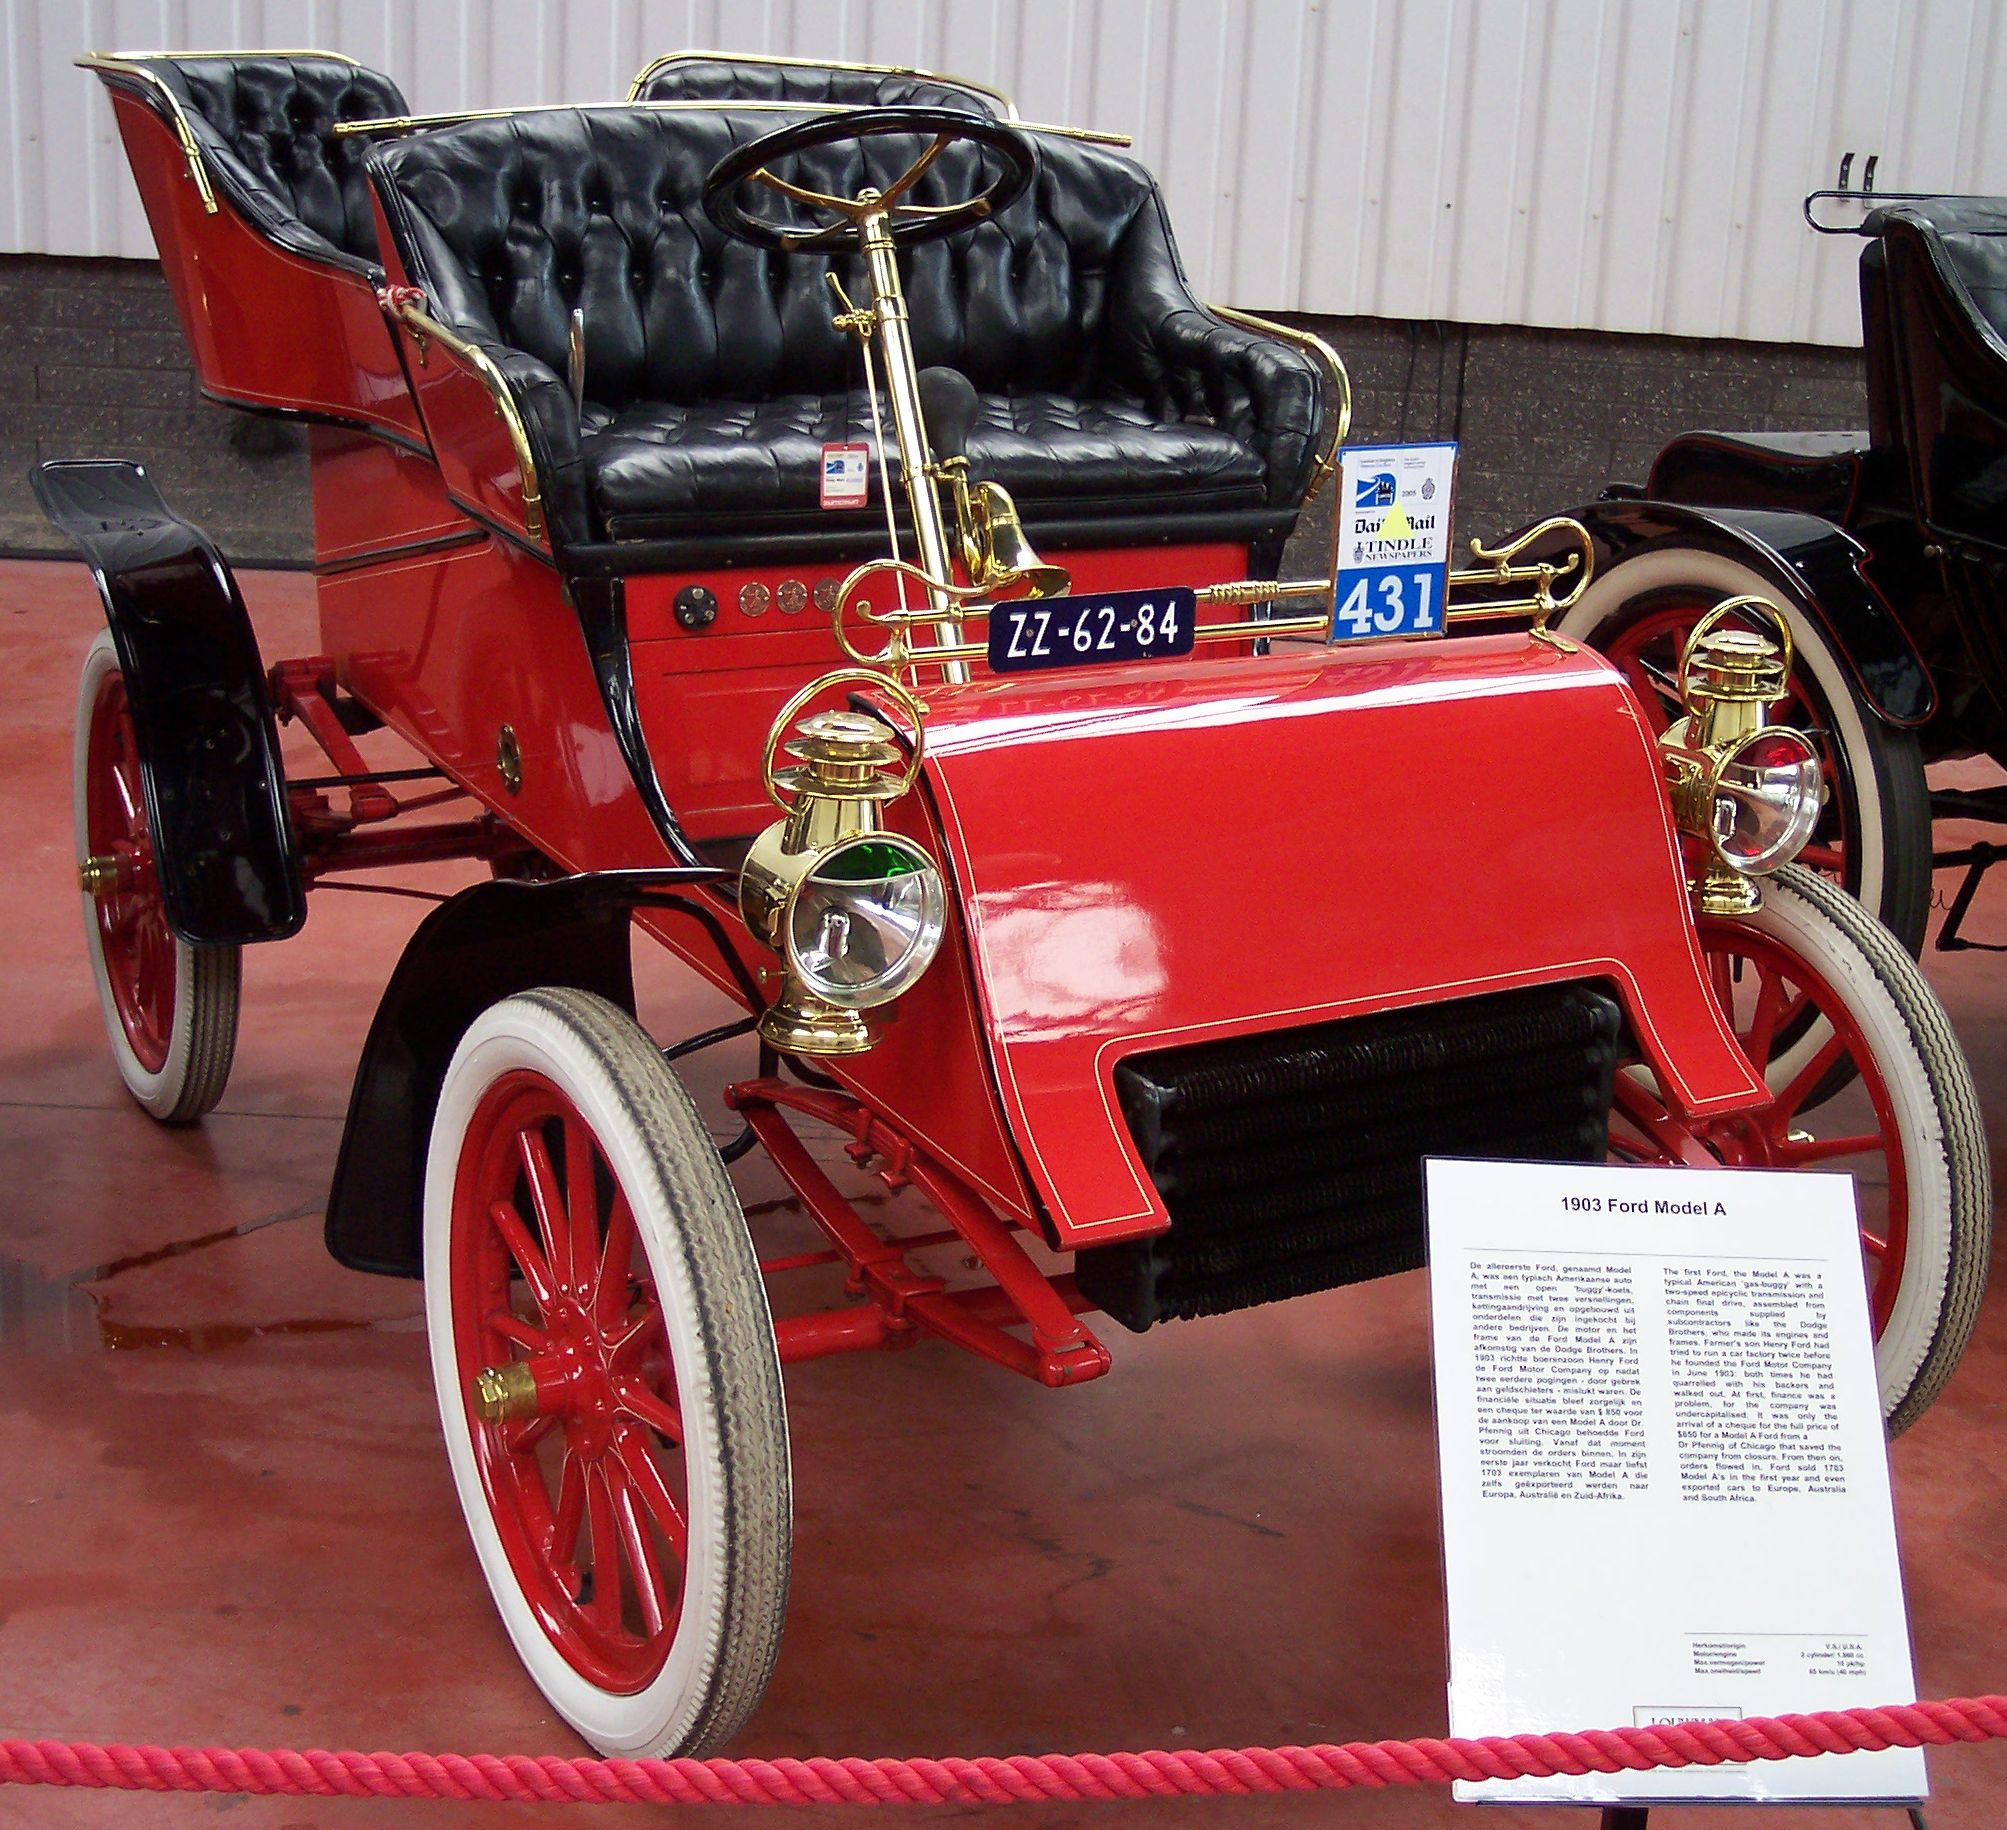 https://upload.wikimedia.org/wikipedia/commons/4/4e/Ford_Model_A_1903.jpg